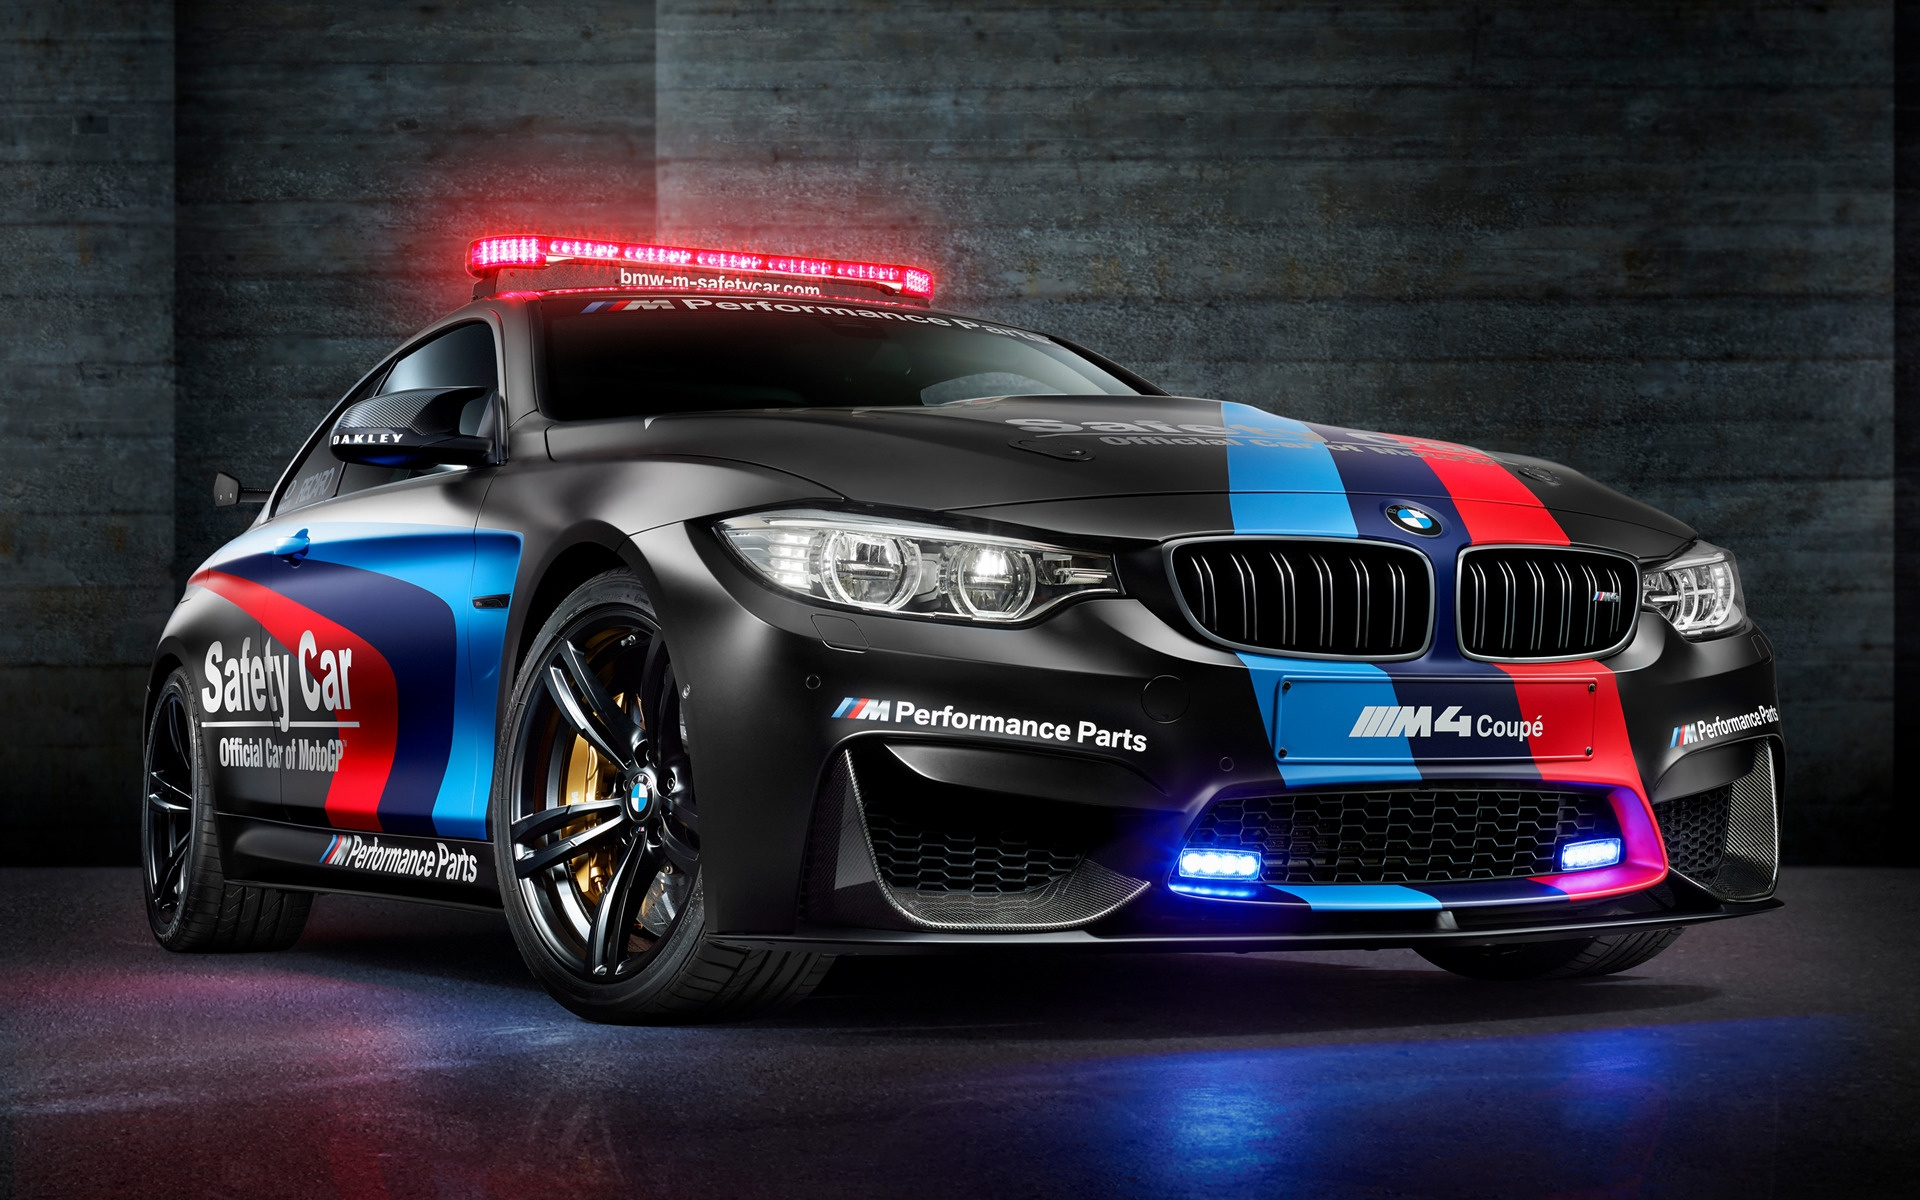 bmw-m-coupe-motogp-safety-car-Bmw-M-Coupe-Motogp-Safety-Car-And-Hd-wallpaper-wpc9003107